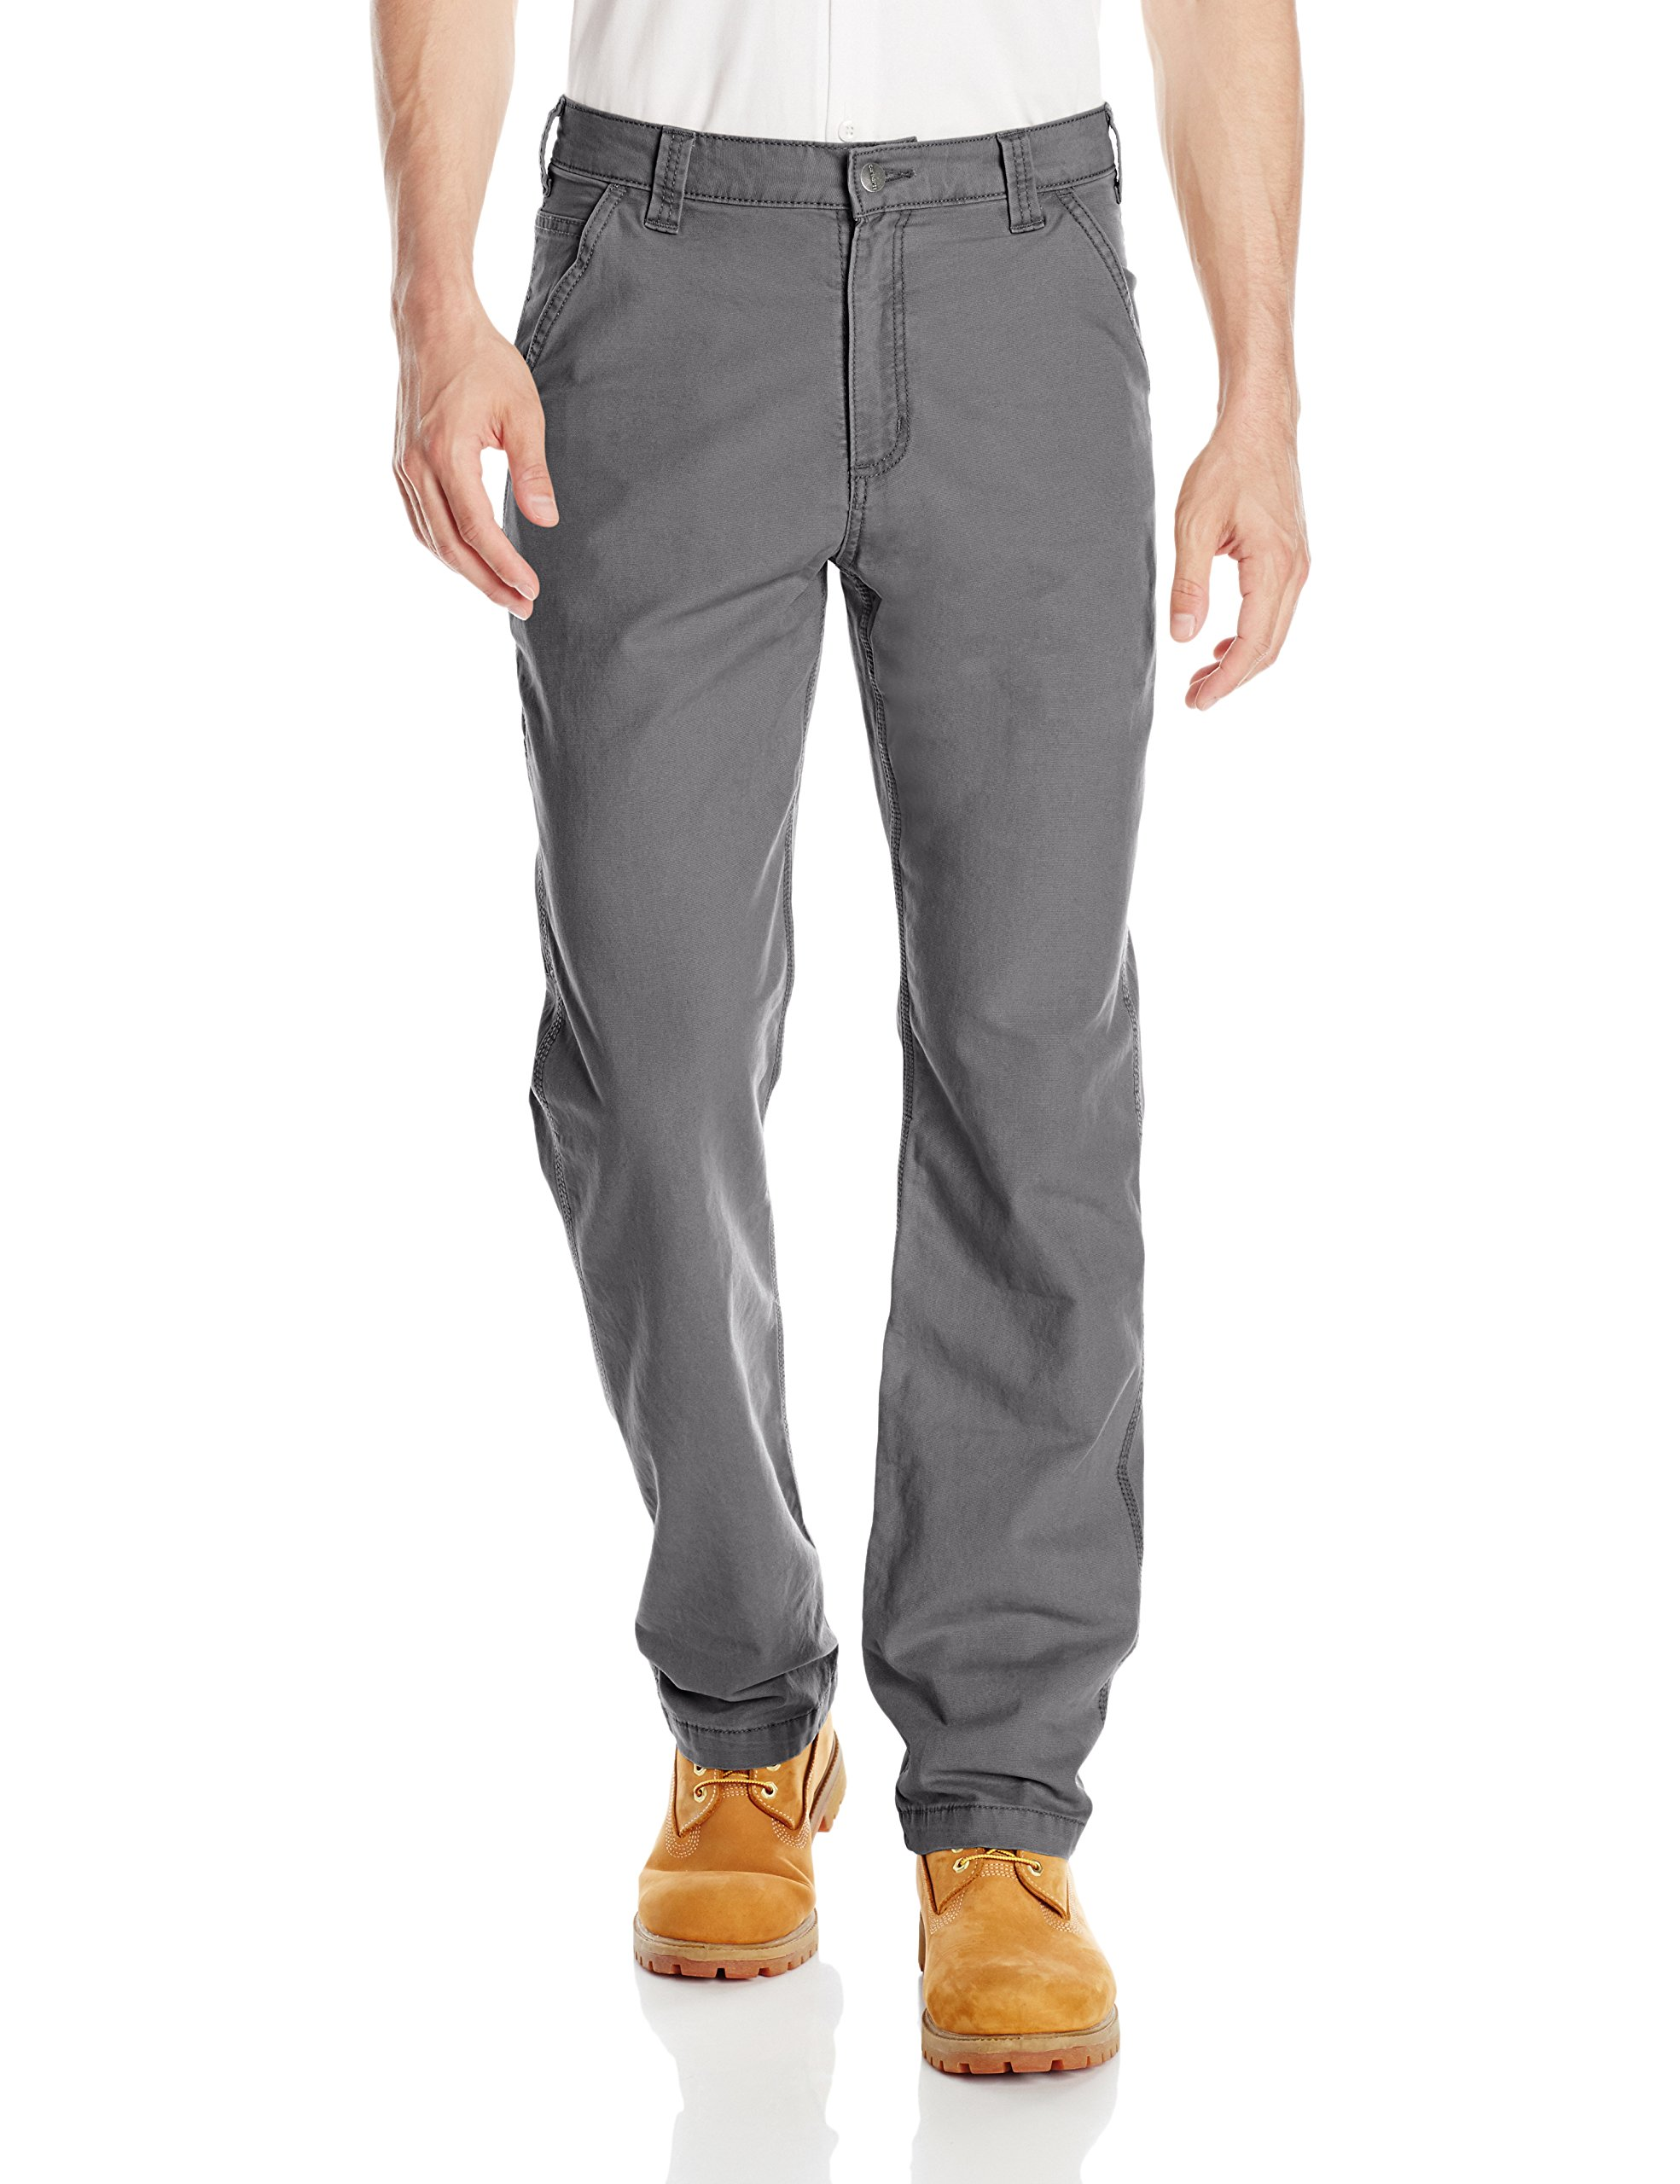 Carhartt Men's Rugged Flex Rigby Dungaree Pant, Gravel, 44W  X 30L